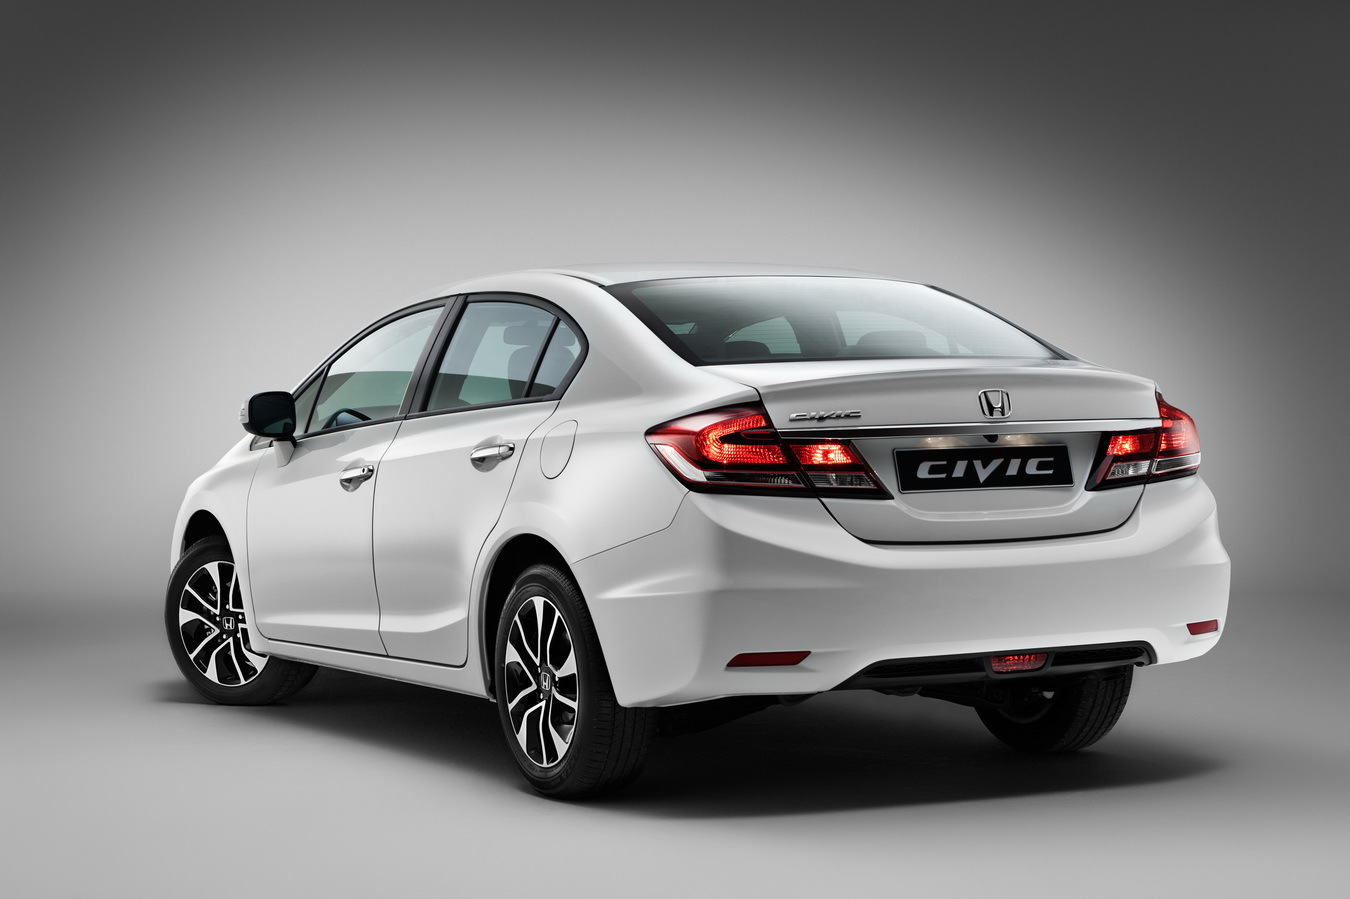 Запчасти на honda civic 2012